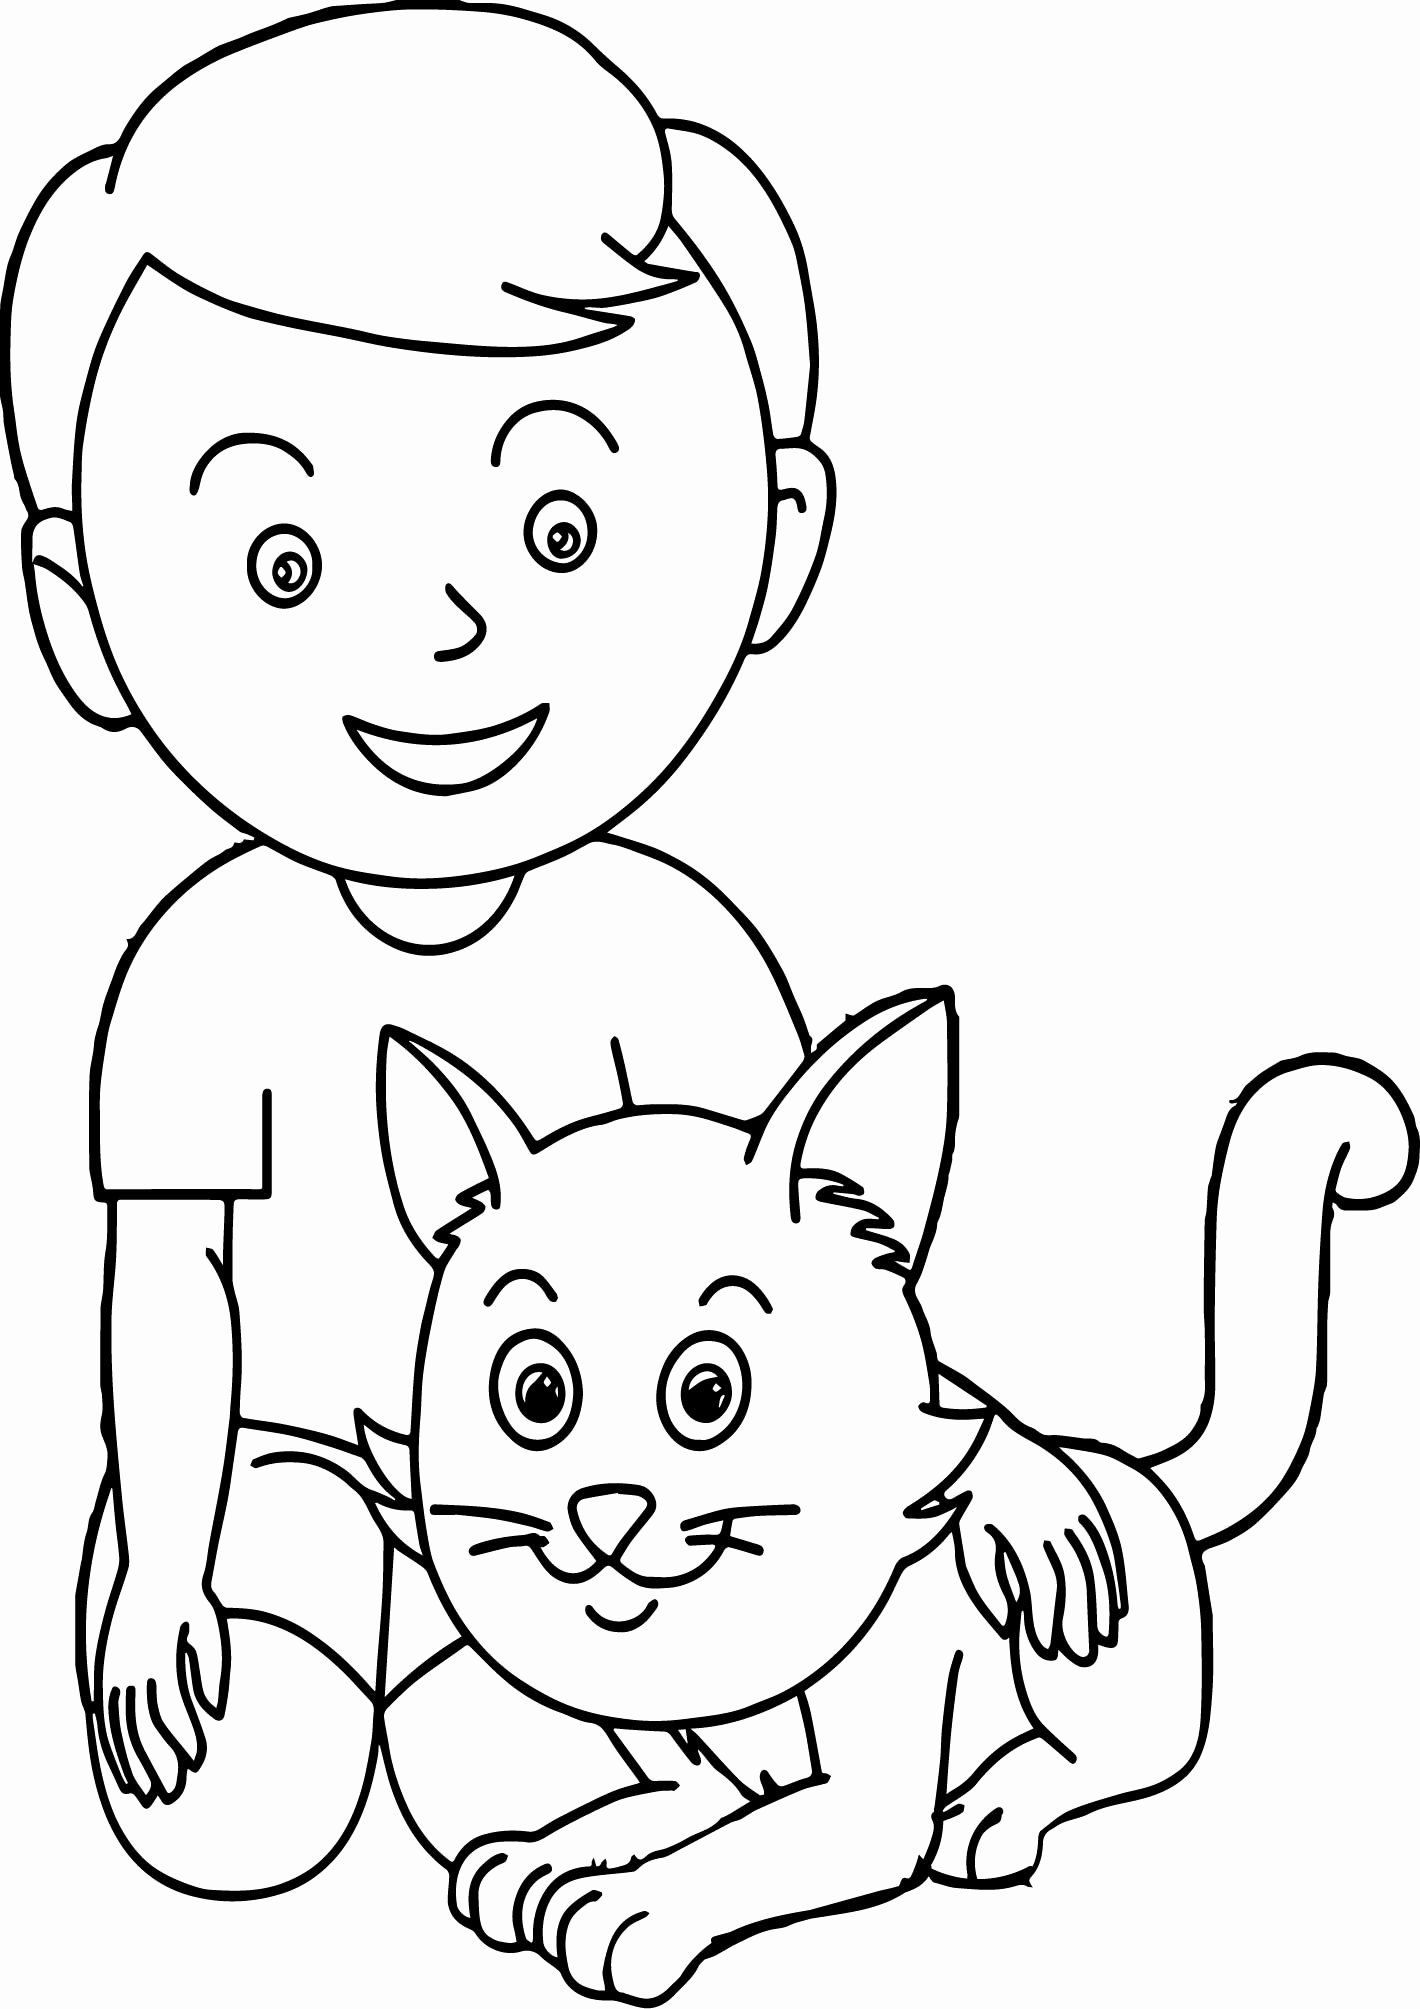 Cat Face Coloring Page Unique Baby Cat Boy Face Printable New Girl Sketch Coloring Page In 2020 Cat Coloring Page Sports Coloring Pages Coloring Pages For Boys